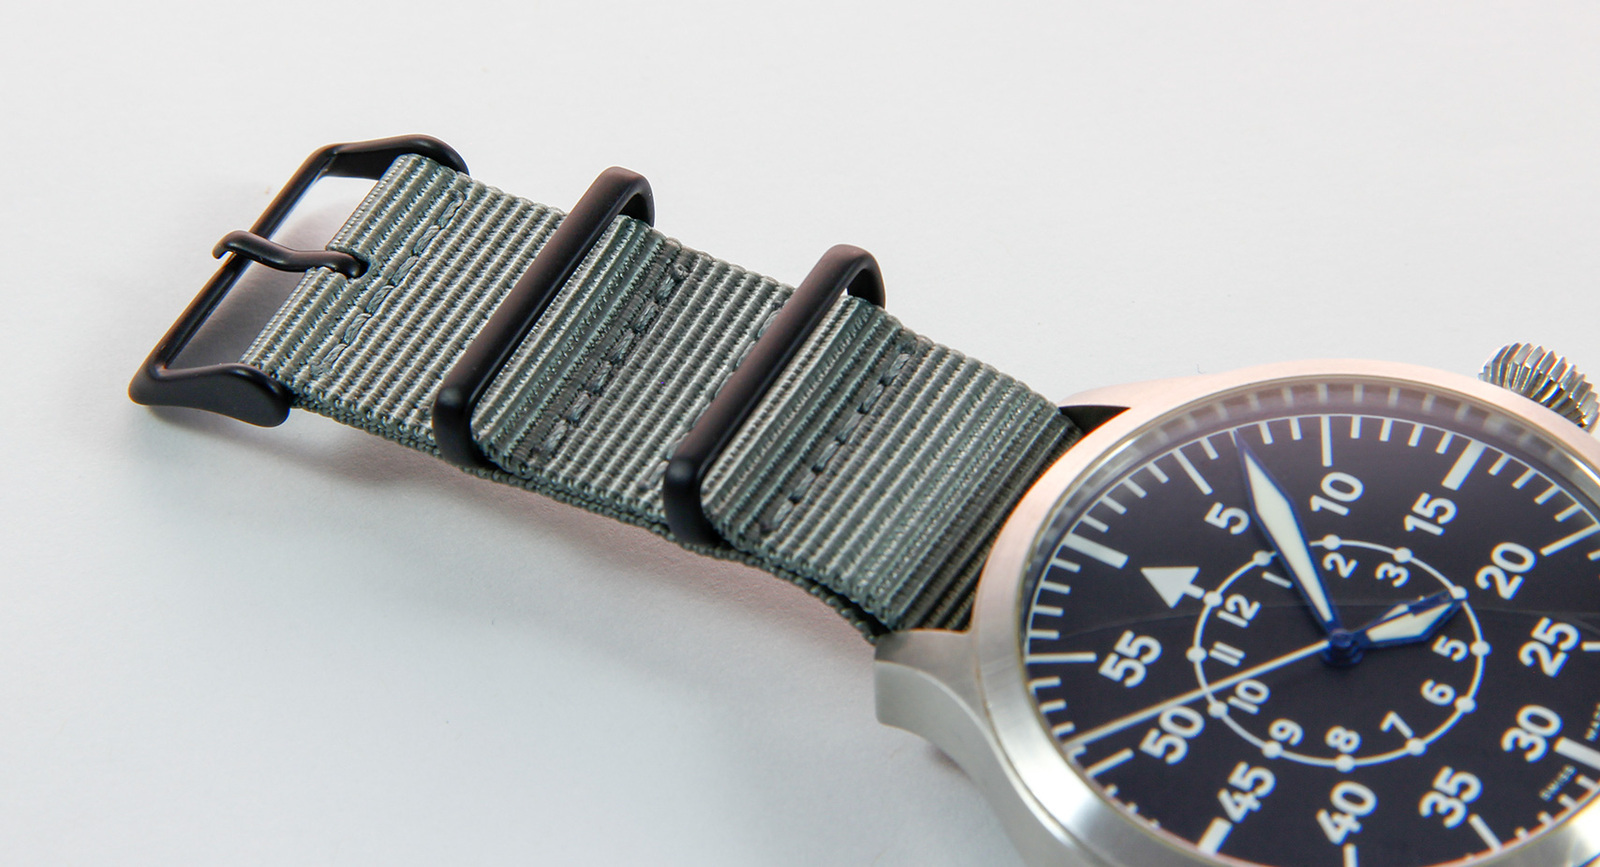 24mm Grey NATO Strap - PVD